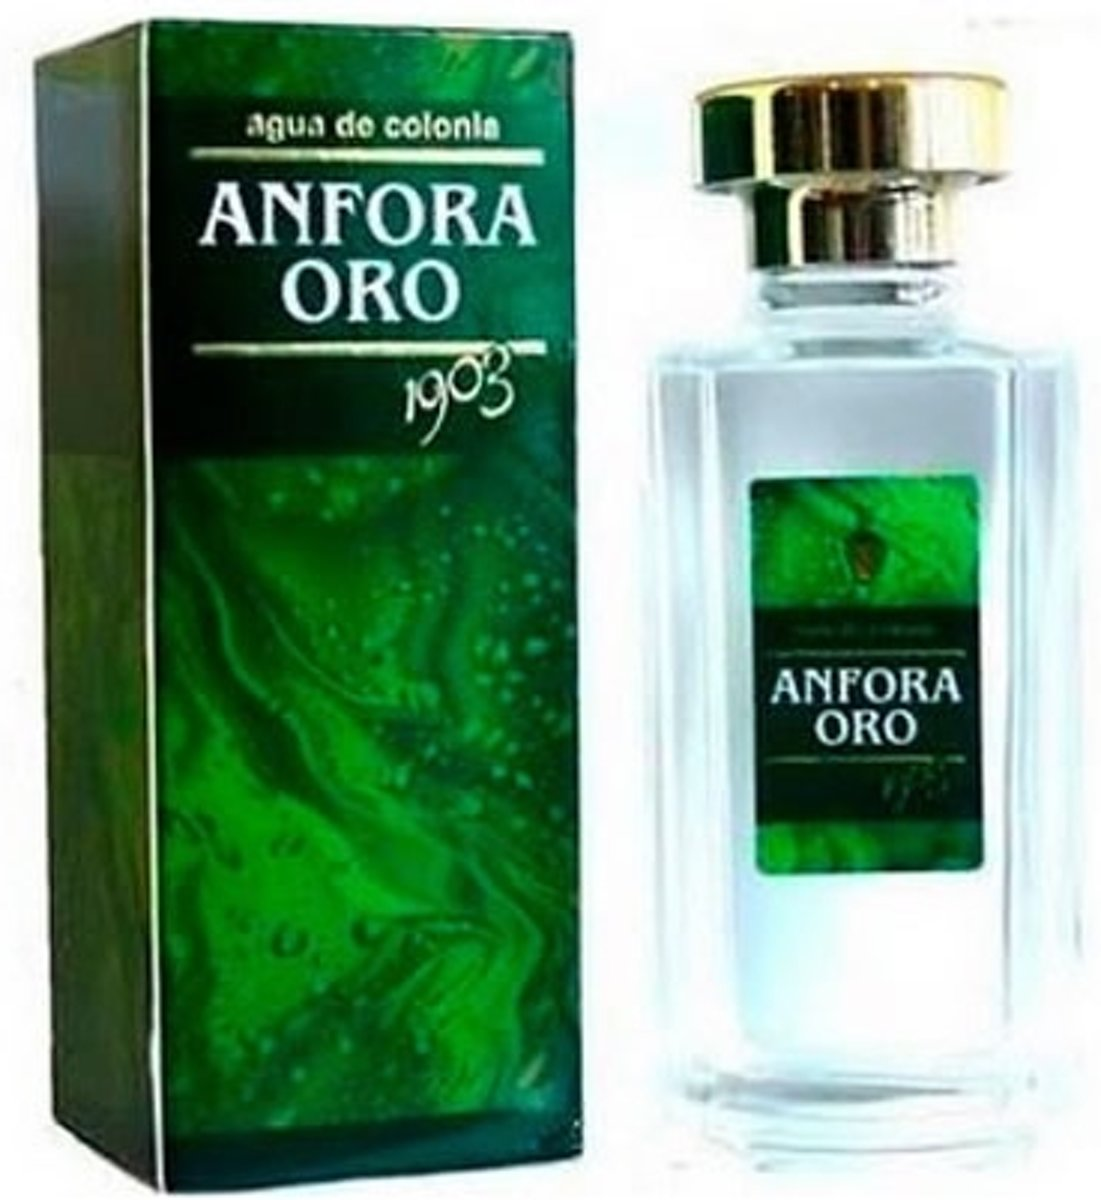 MULTI BUNDEL 2 stuks Instituto Espanol Anfora Oro Eau De Cologne 800ml